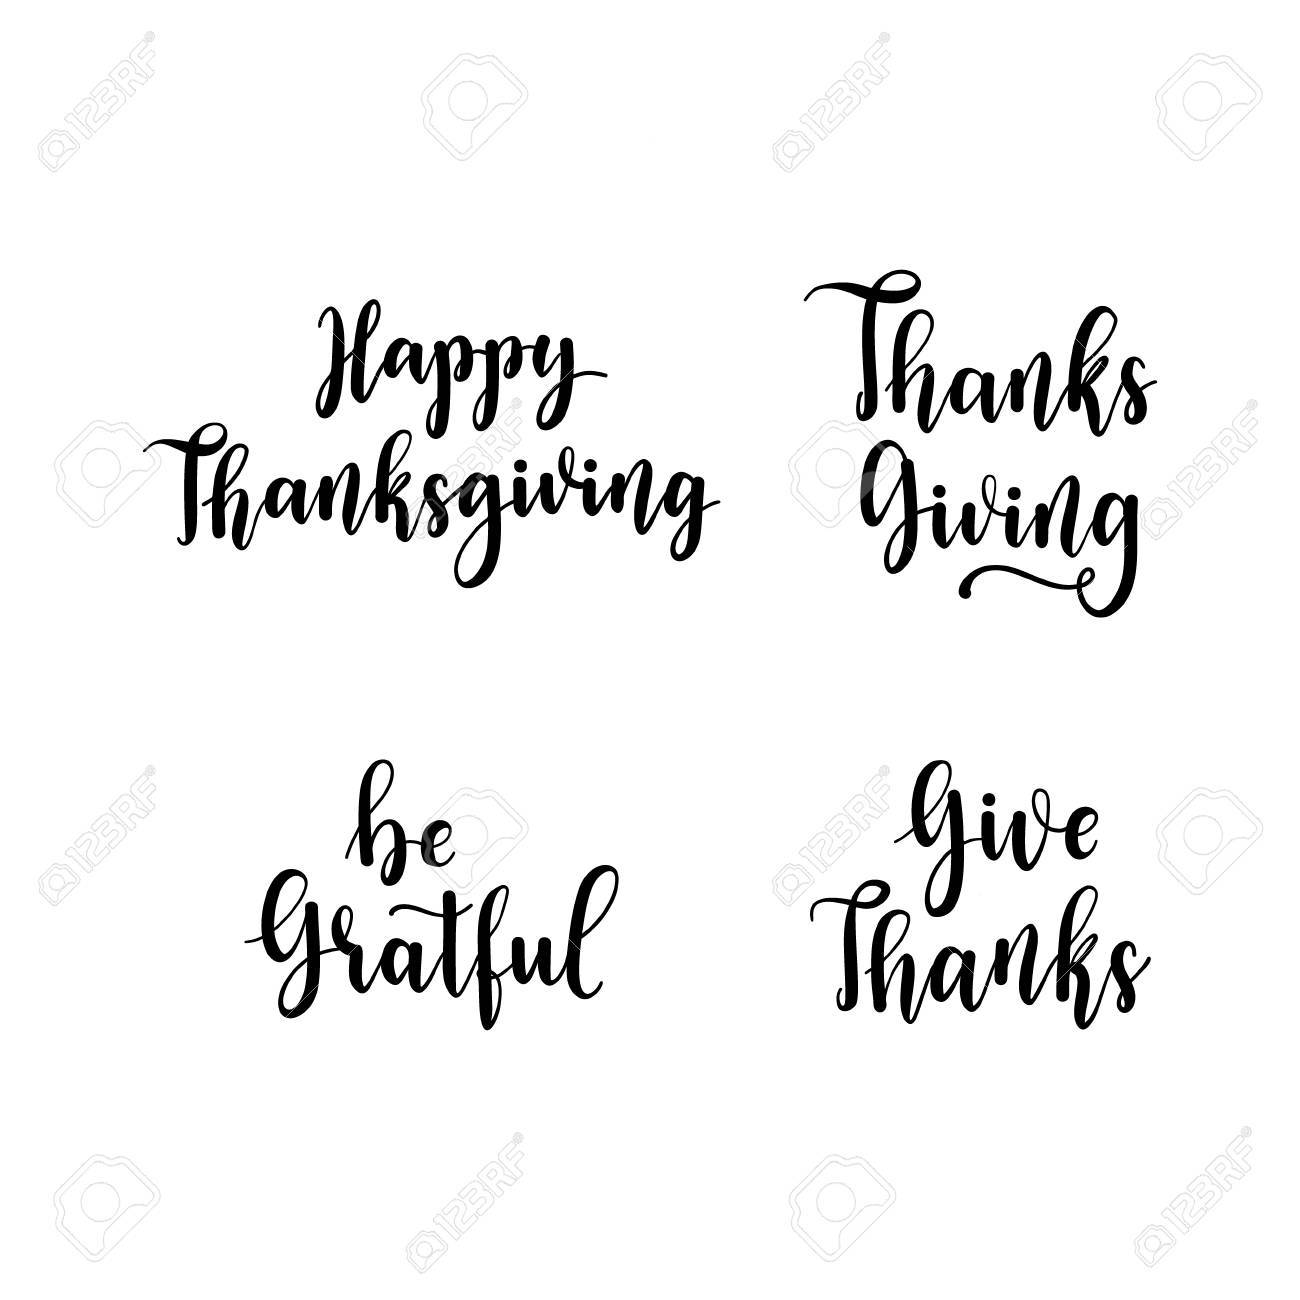 Happy Thanksgiving Be Gratful Give Thanks Hand Lettering Elements